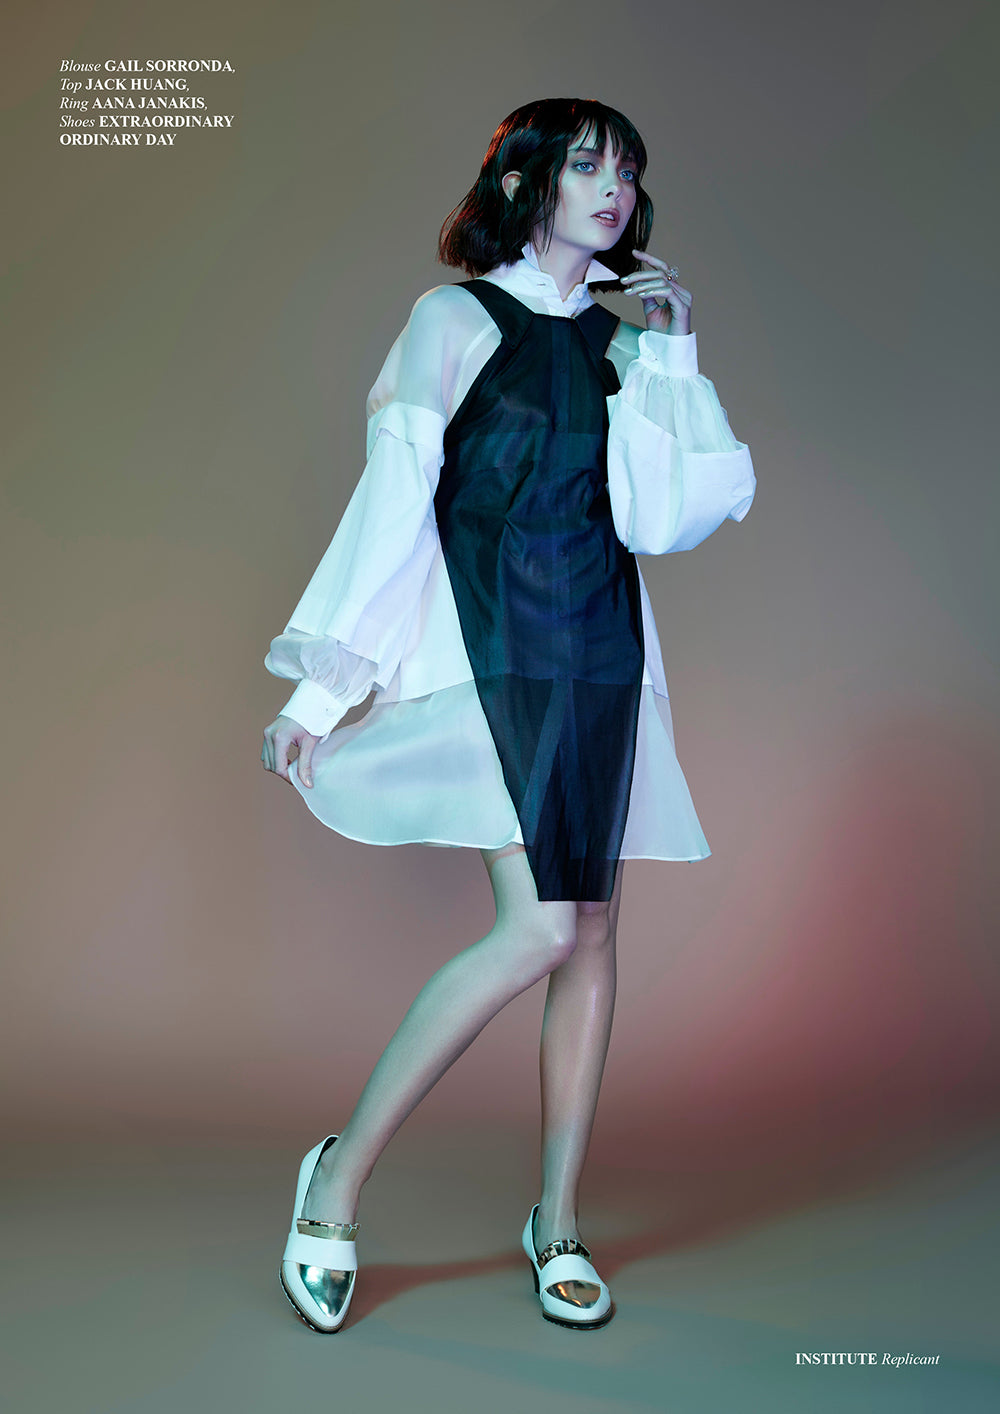 ASHLEY LIM Women's Designer Leather Shoes - White Babylon Pumps Featured on Institute Magazine